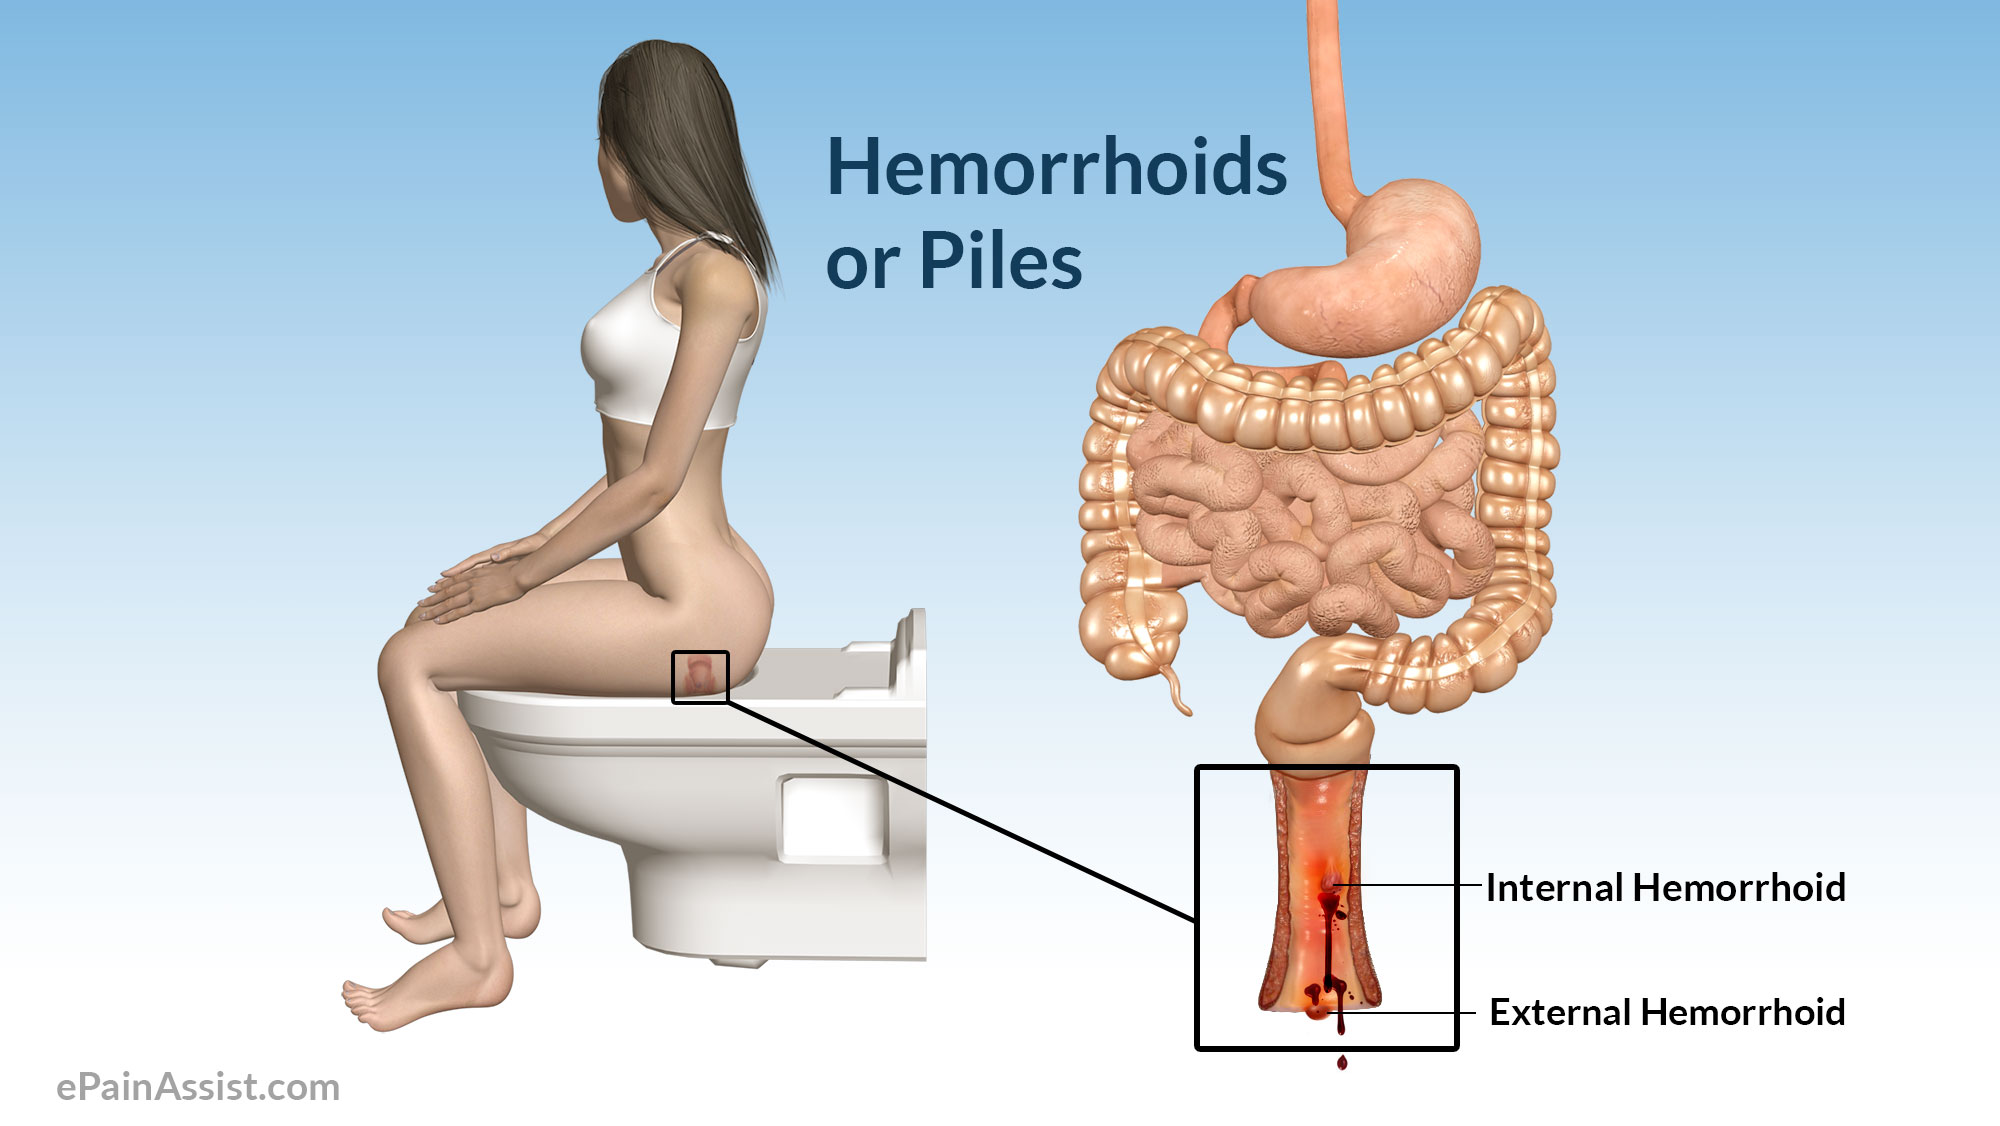 q & a on hemorrhoid or piles: is it a serious disease?, Human Body